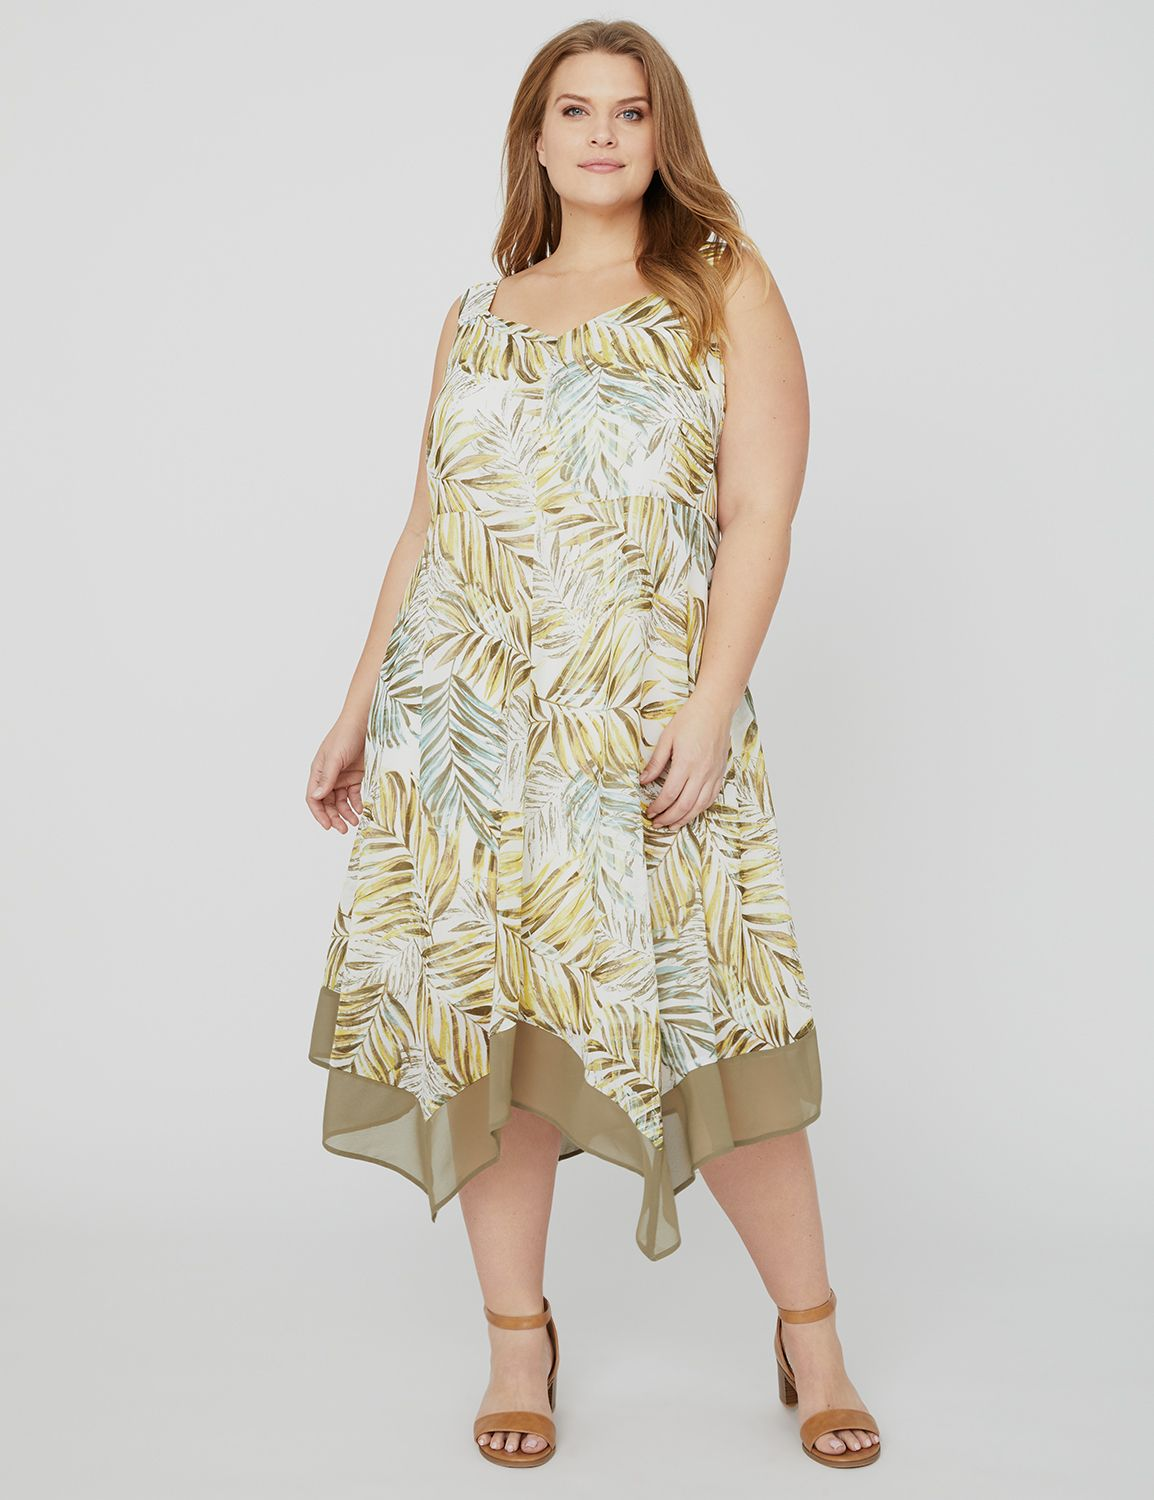 Greenwood Imprint Dress with Hankerchief Hem 1089938 Printed HANKY HEM DRESS wit MP-300102378